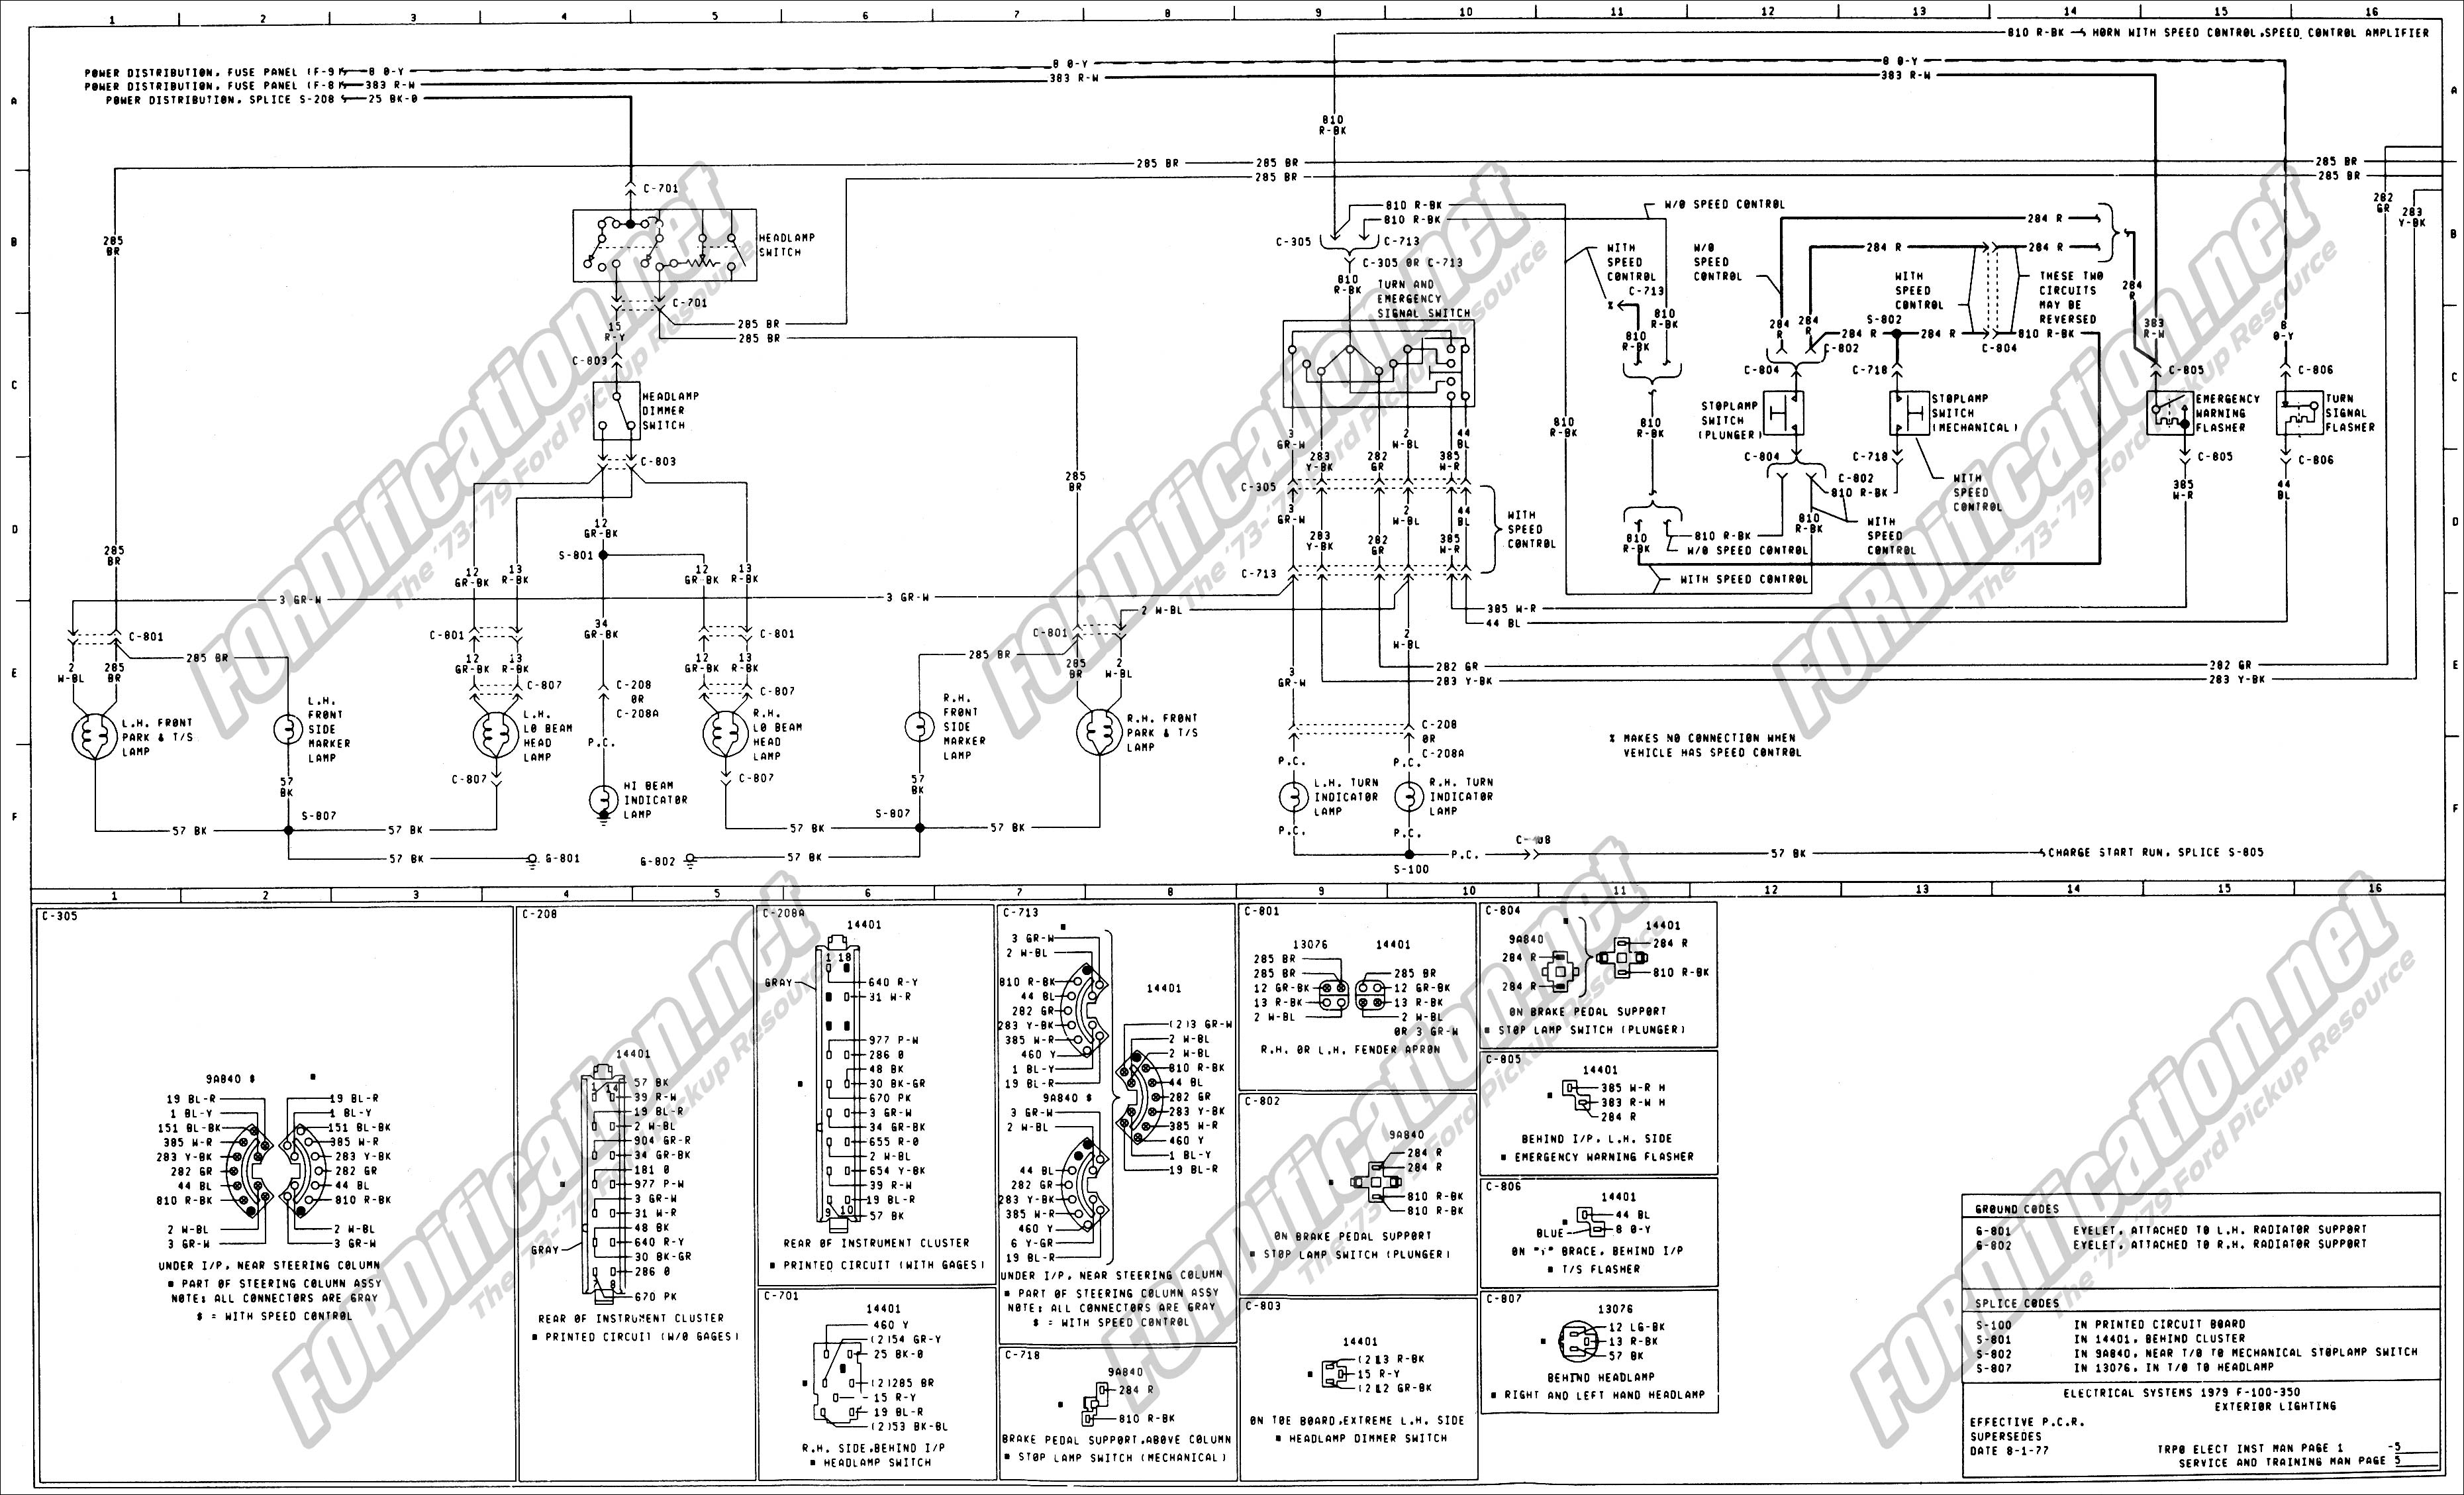 diagram for 94 ford f 150 wiper wiring harness on system wiringdiagram for 94 ford f 150 wiper wiring harness on system wiring uk trailer wiring diagram